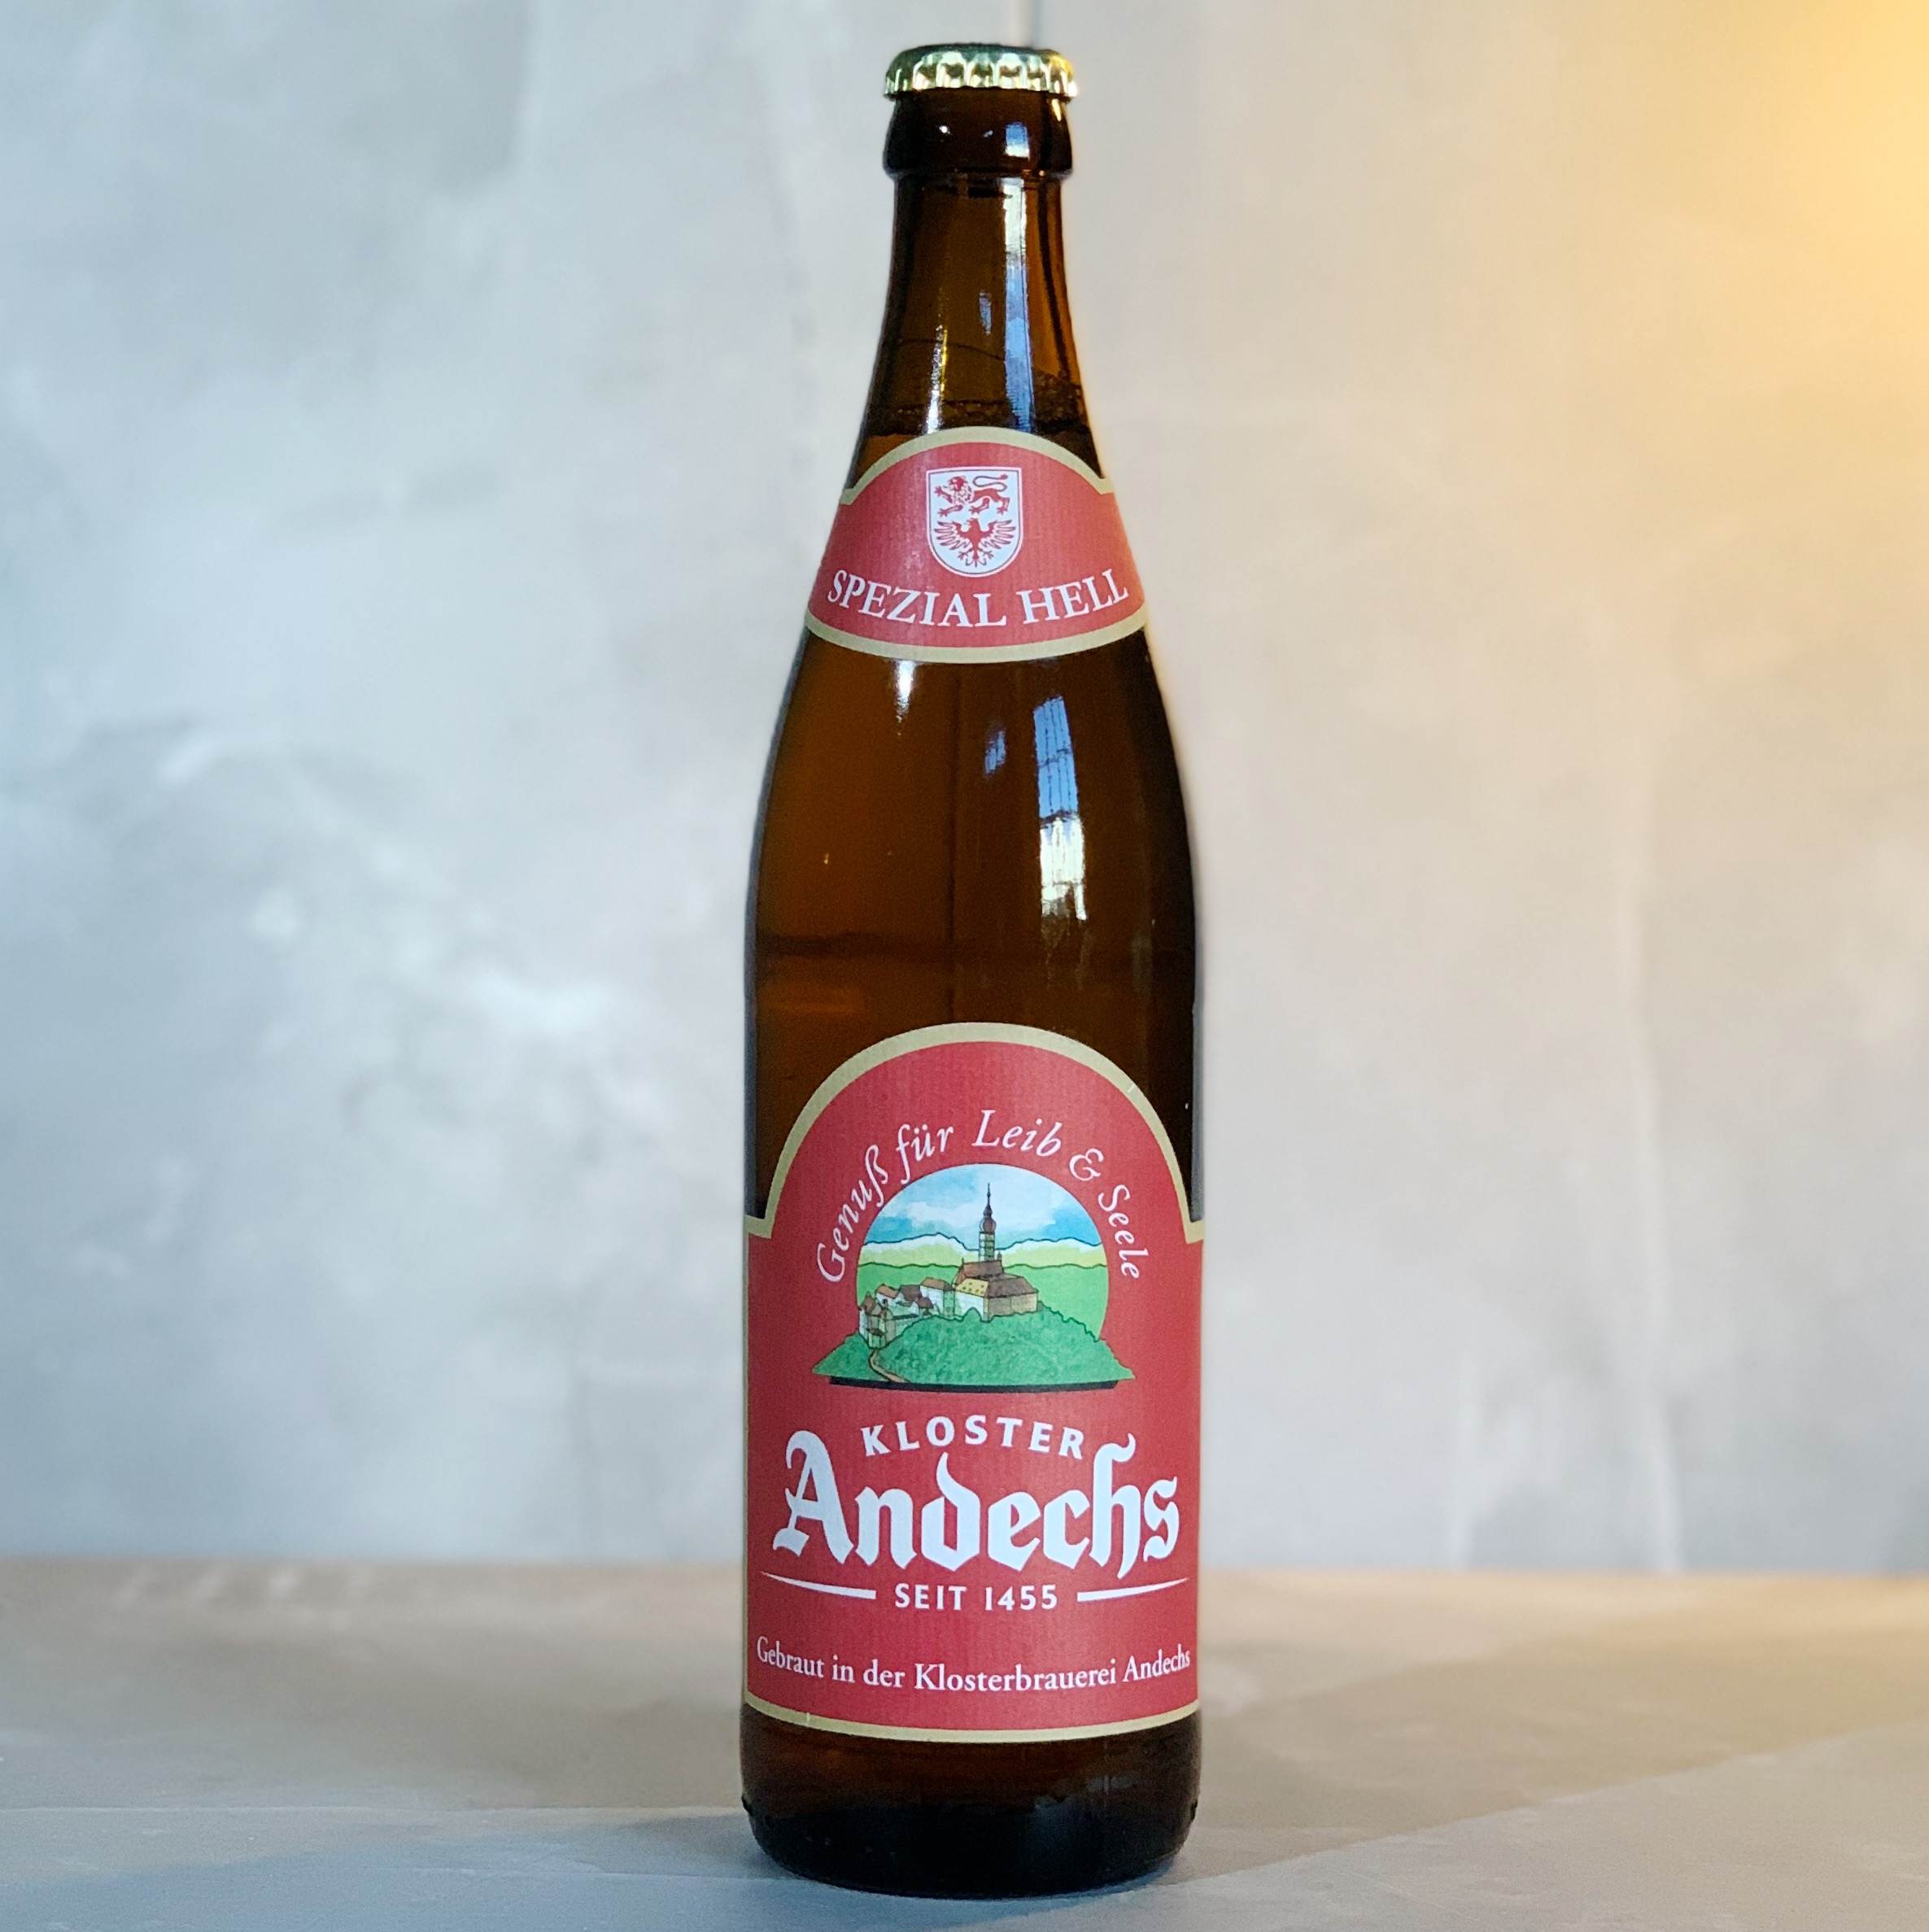 ANDECHSER | SPEZIAL | HELLS LAGER | 5.9% ABV | 500ML